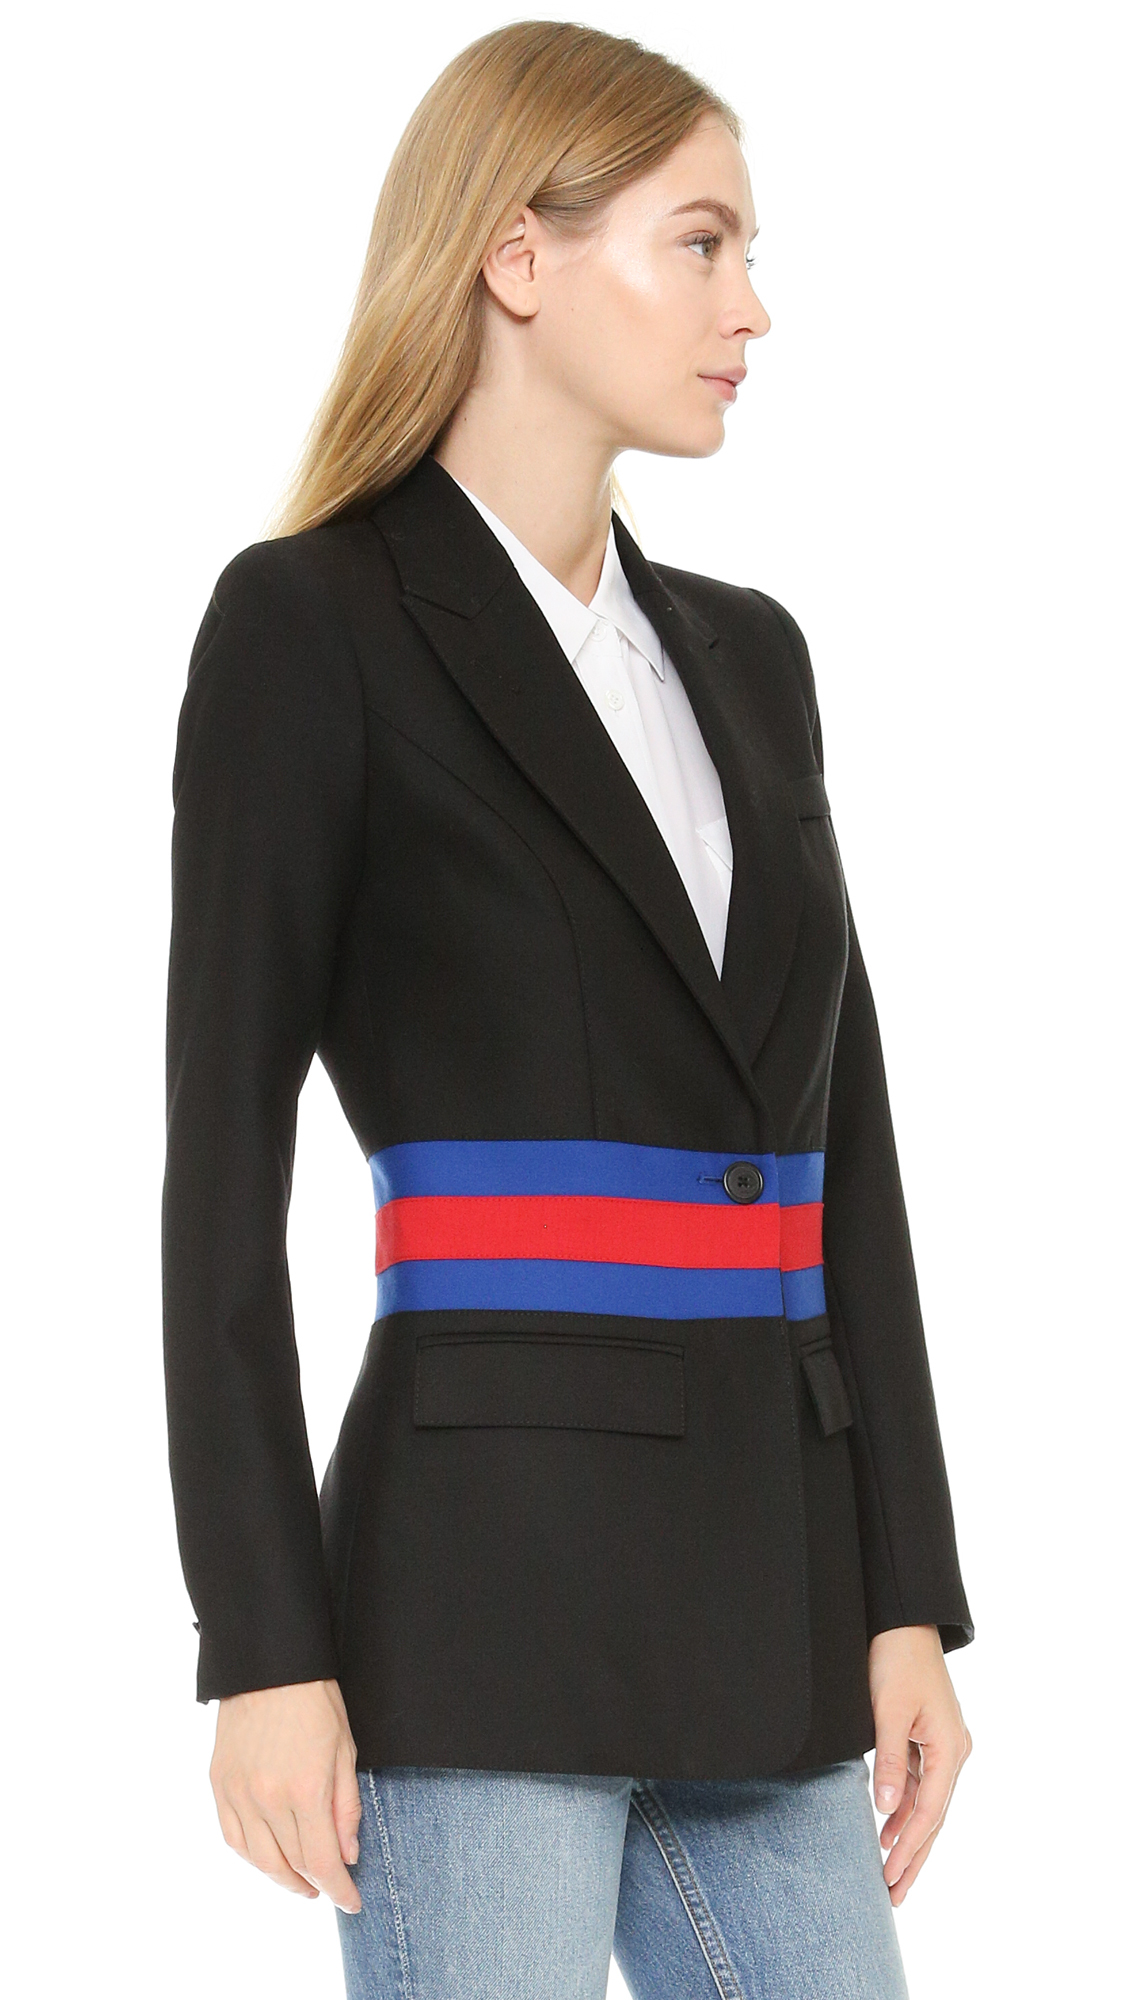 Smythe tailored blazer in black lyst for Smythe designer